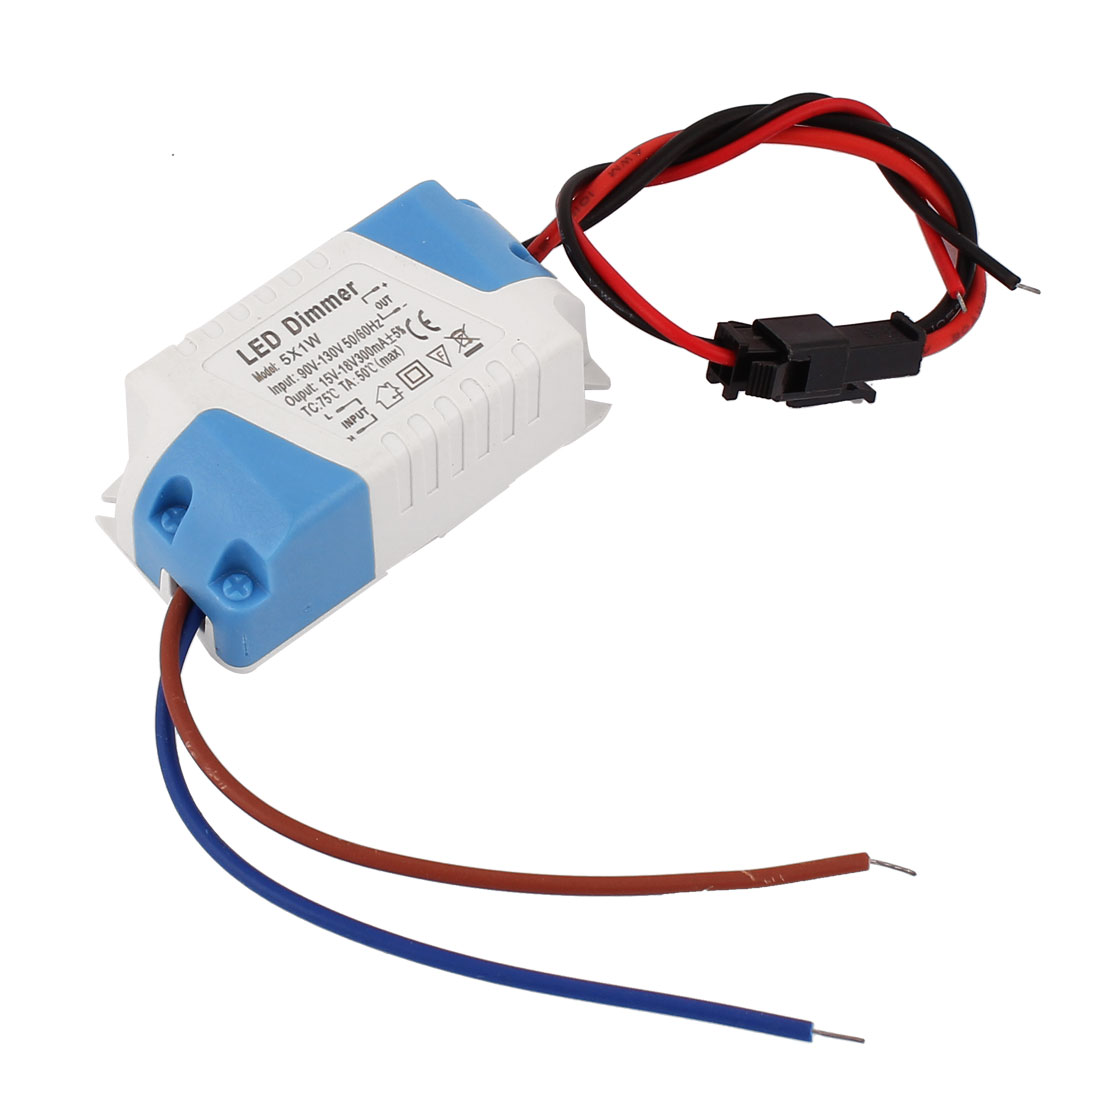 AC 90-130V to DC15-18V 300mA 5x1W Waterproof Plastic Housing LED Driver Dimmer Power Supply Converter